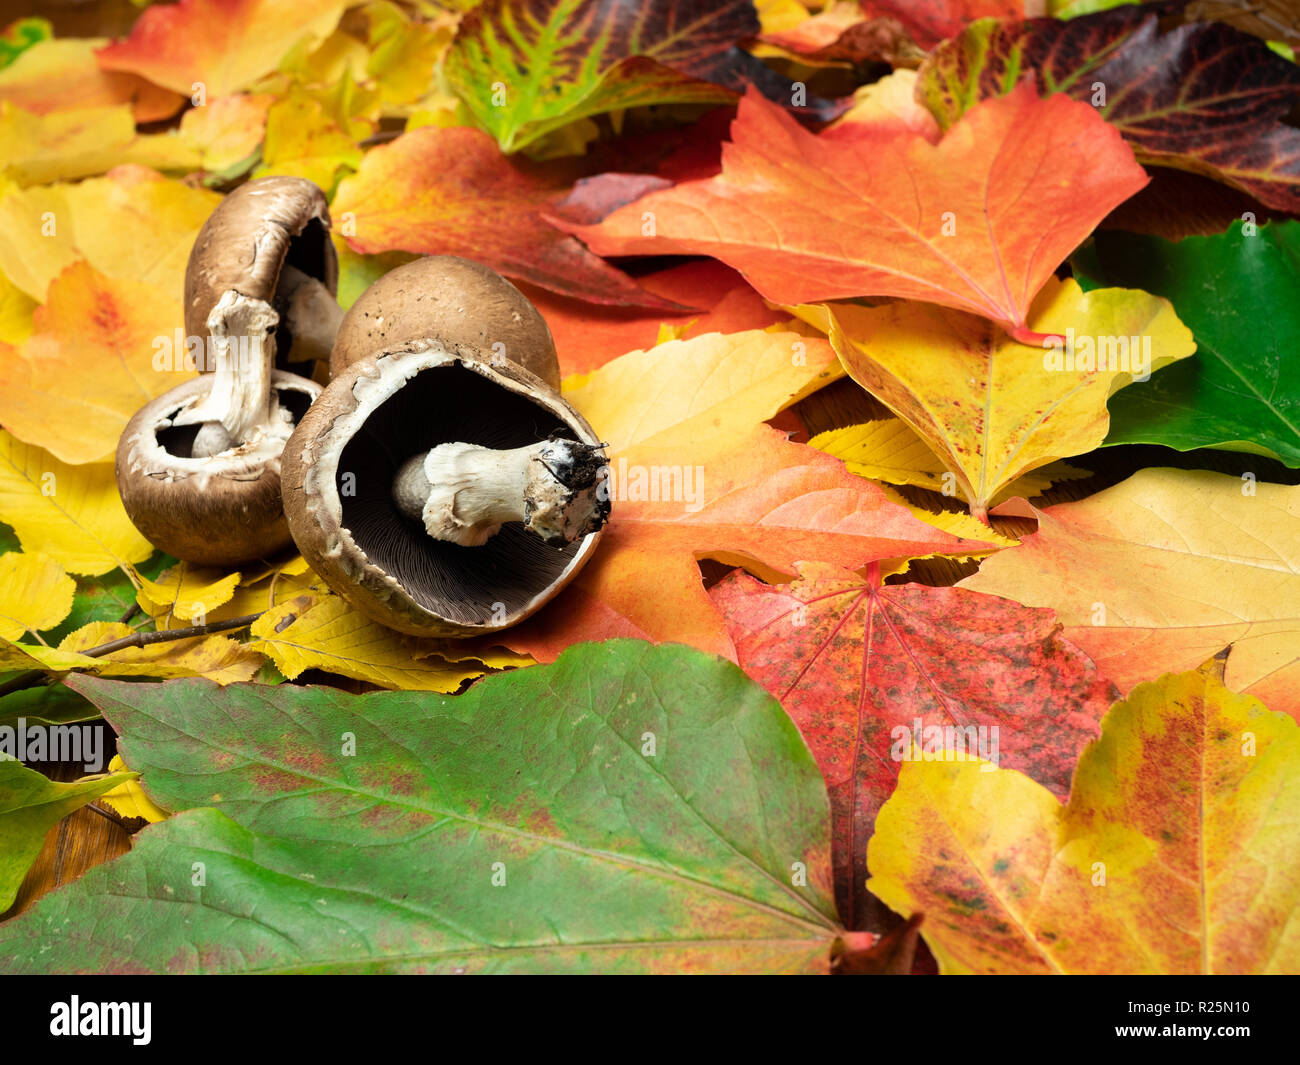 Mushrooms (seasonal vegetable) are placed on autumn leaves in green, red, orange and yellow colours. Close-up. Stock Photo